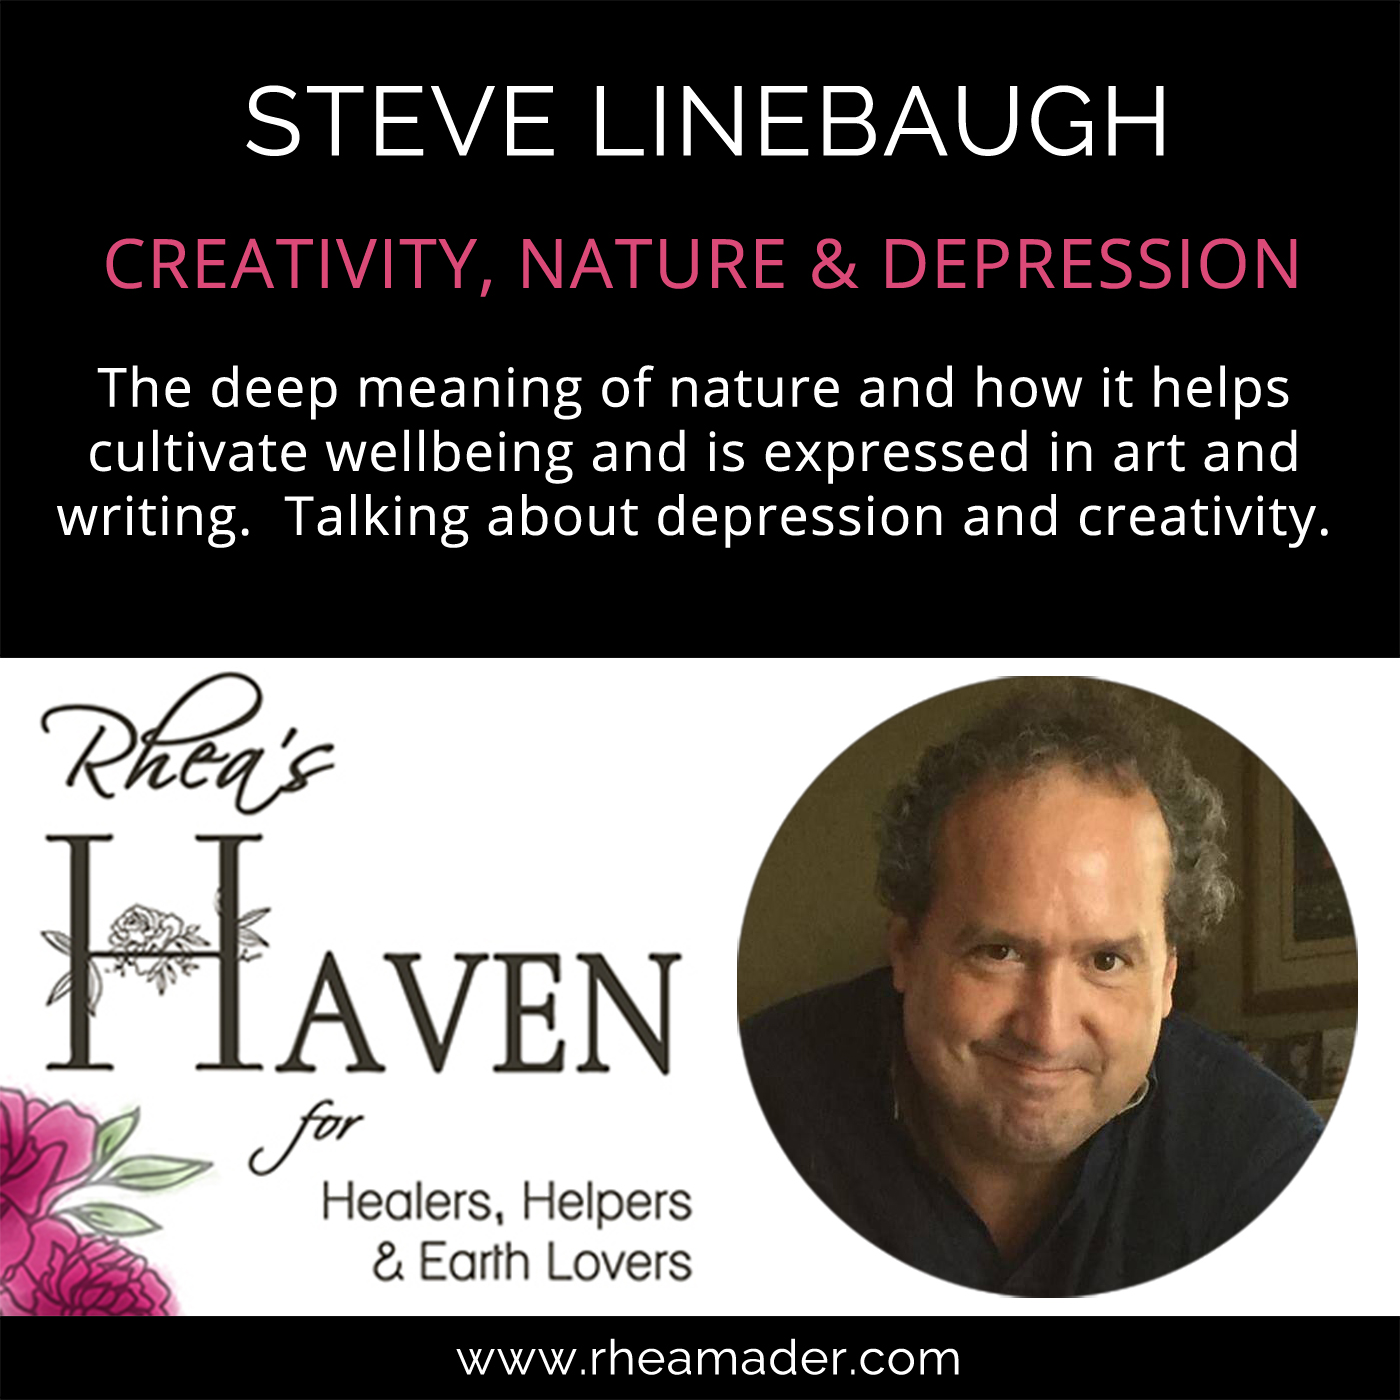 STEVEN LINEBAUGH:  Writing, Artwork, Depression & Nature